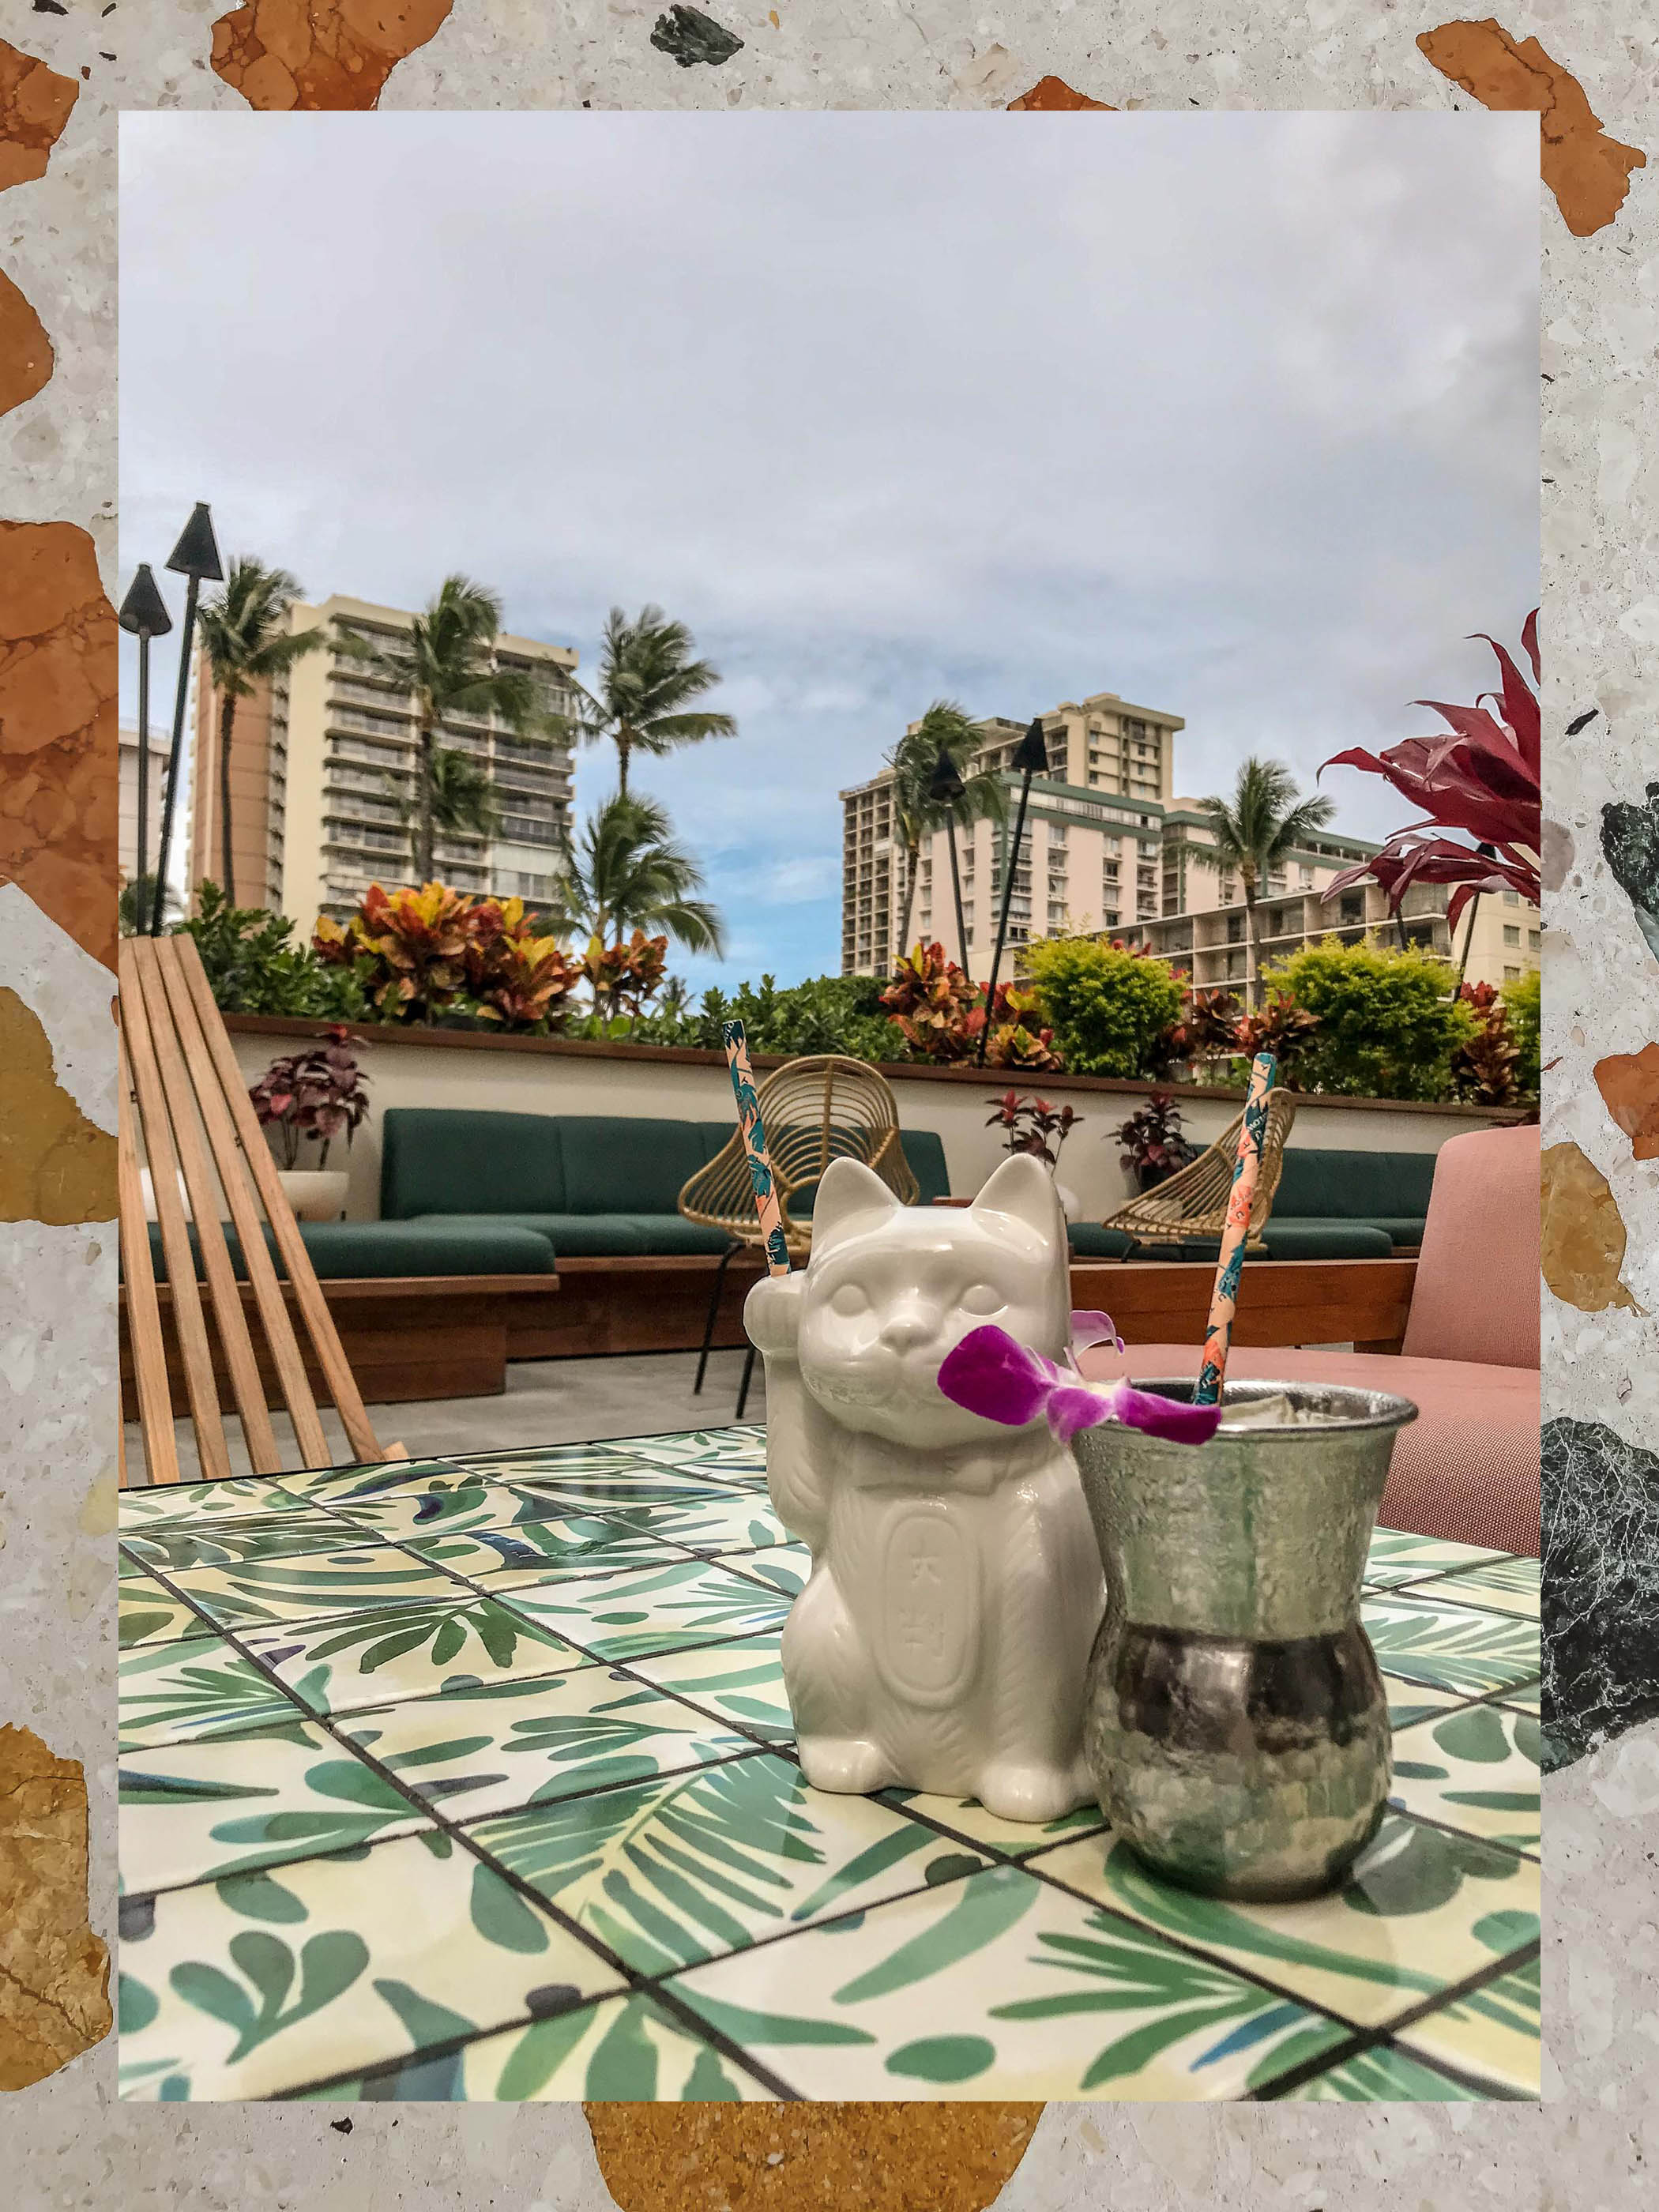 Looking for a vacation from your vacation? A hotel home that comes complete with a Lanai? - Look no further. It starts here at The Laylow.